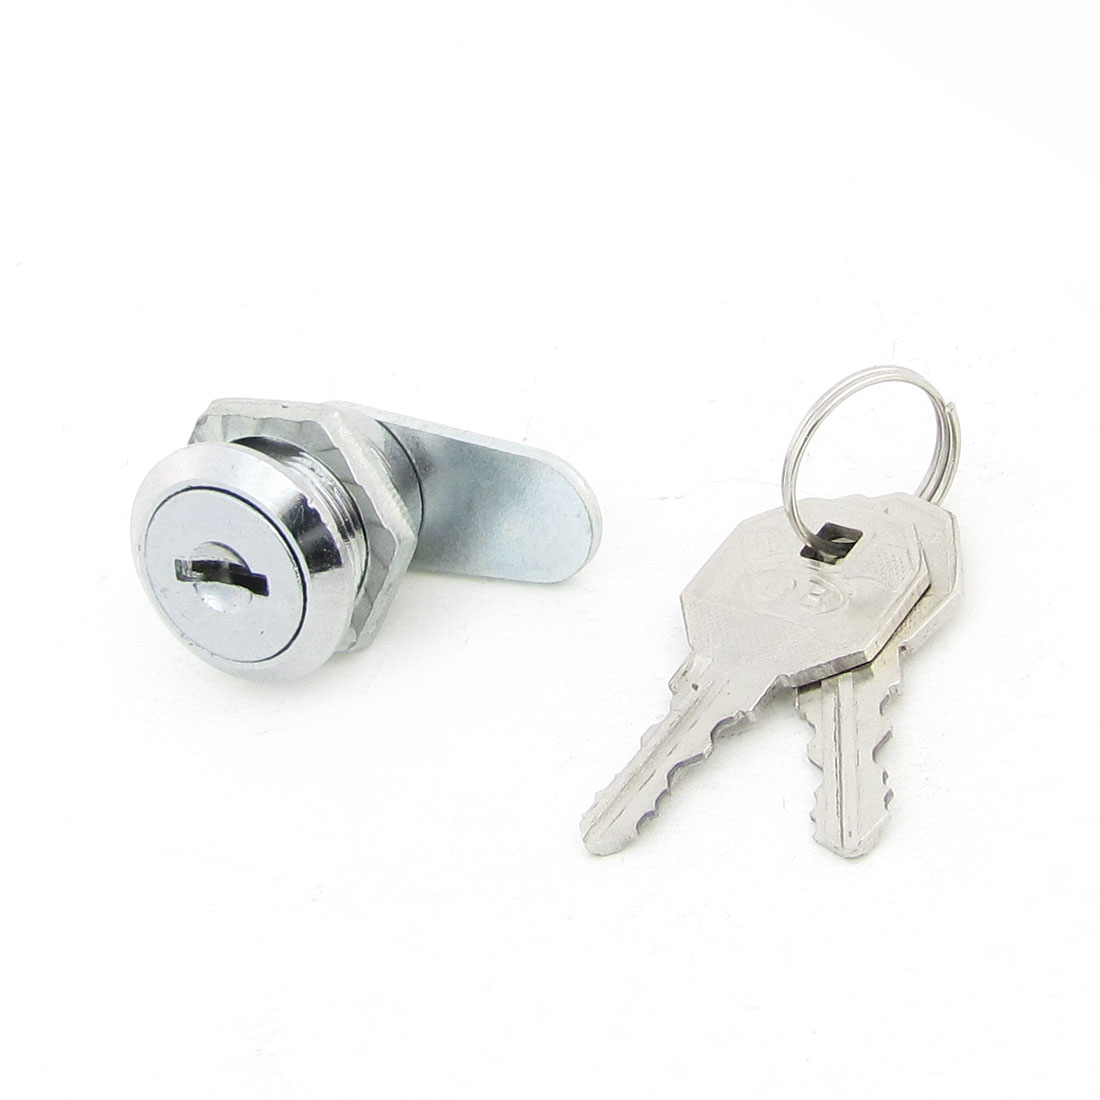 House Office 17.4mm Dia Straight Flat Cam Quarter Turn Lock w Keys